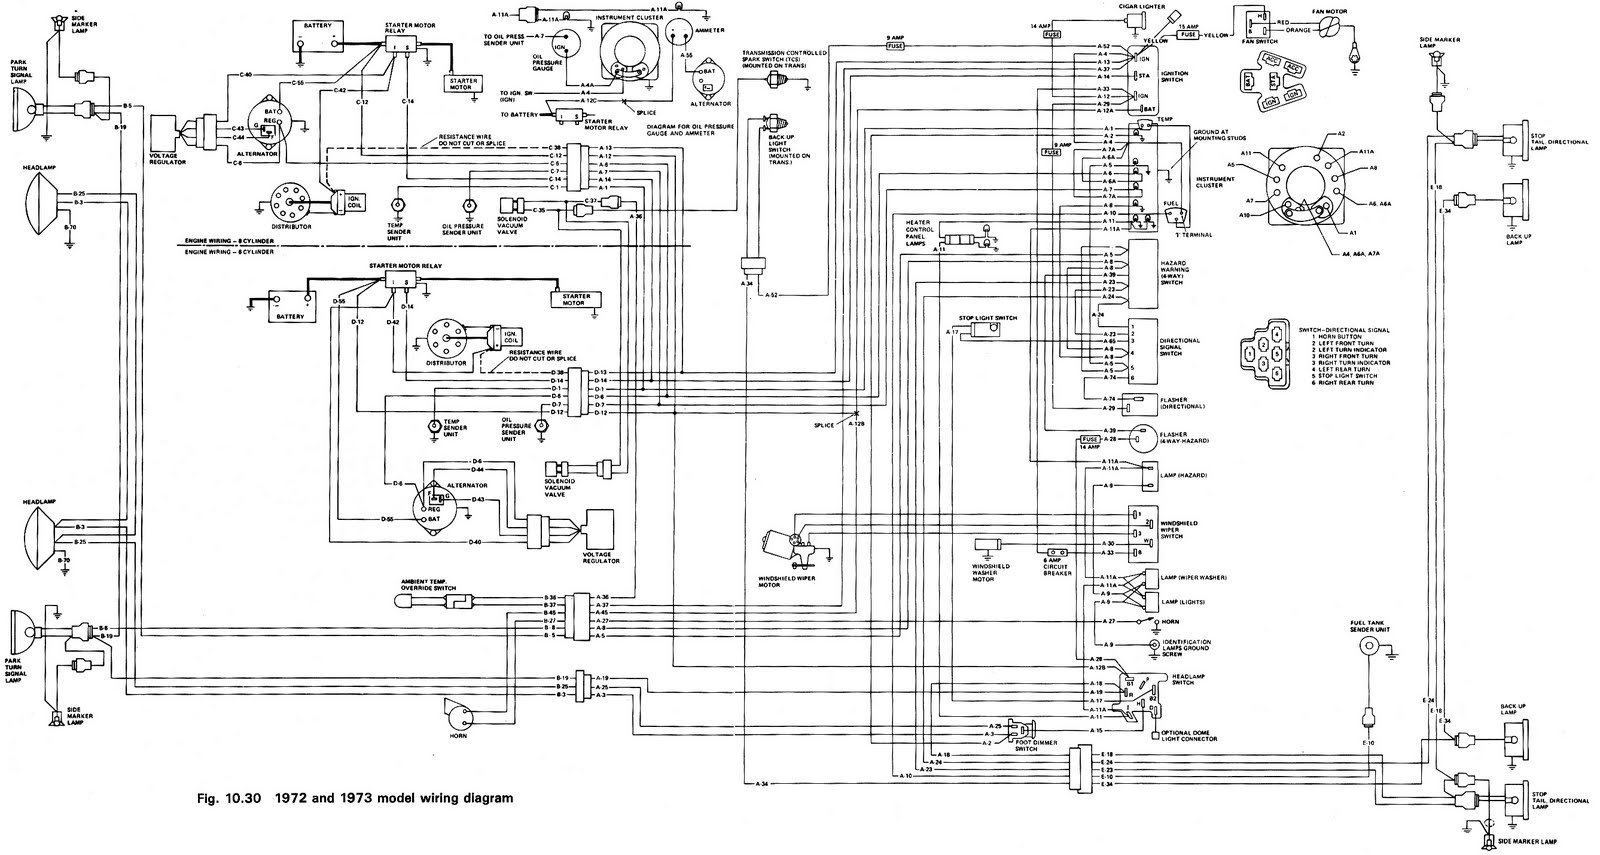 1970 cj5 wiring diagram cj 1976 1977jpg 1959 cj5 wiring schematic jeep cj5 wiring schematic [ 1600 x 855 Pixel ]